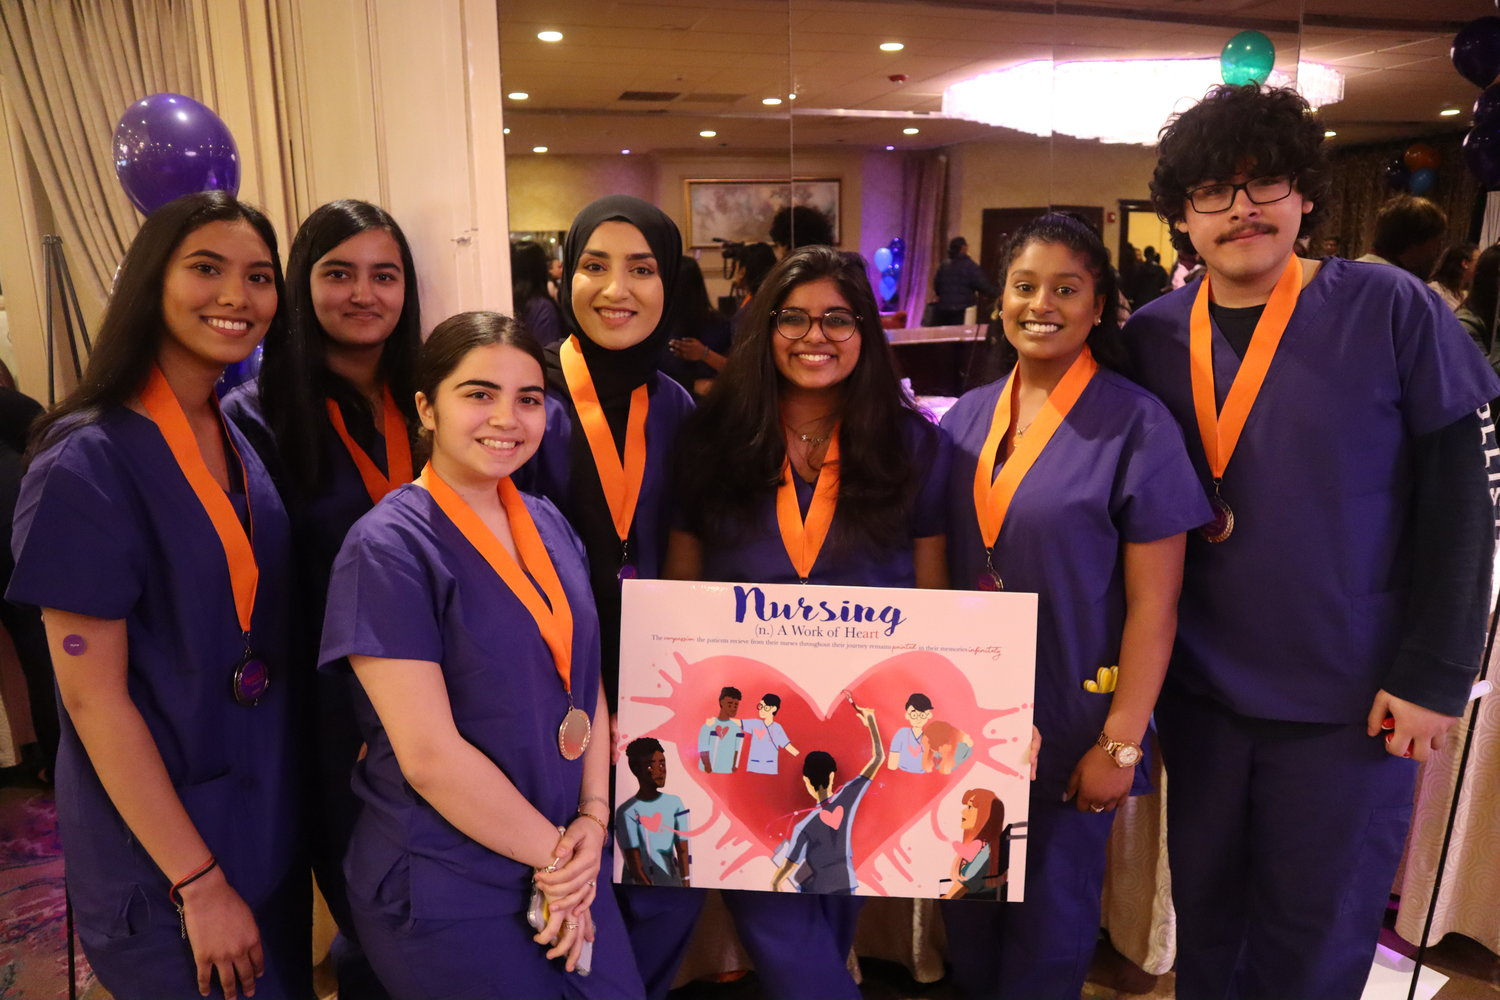 Valley Stream Central High School students won third place in the poster competition for their illustration about Northwell nurses.